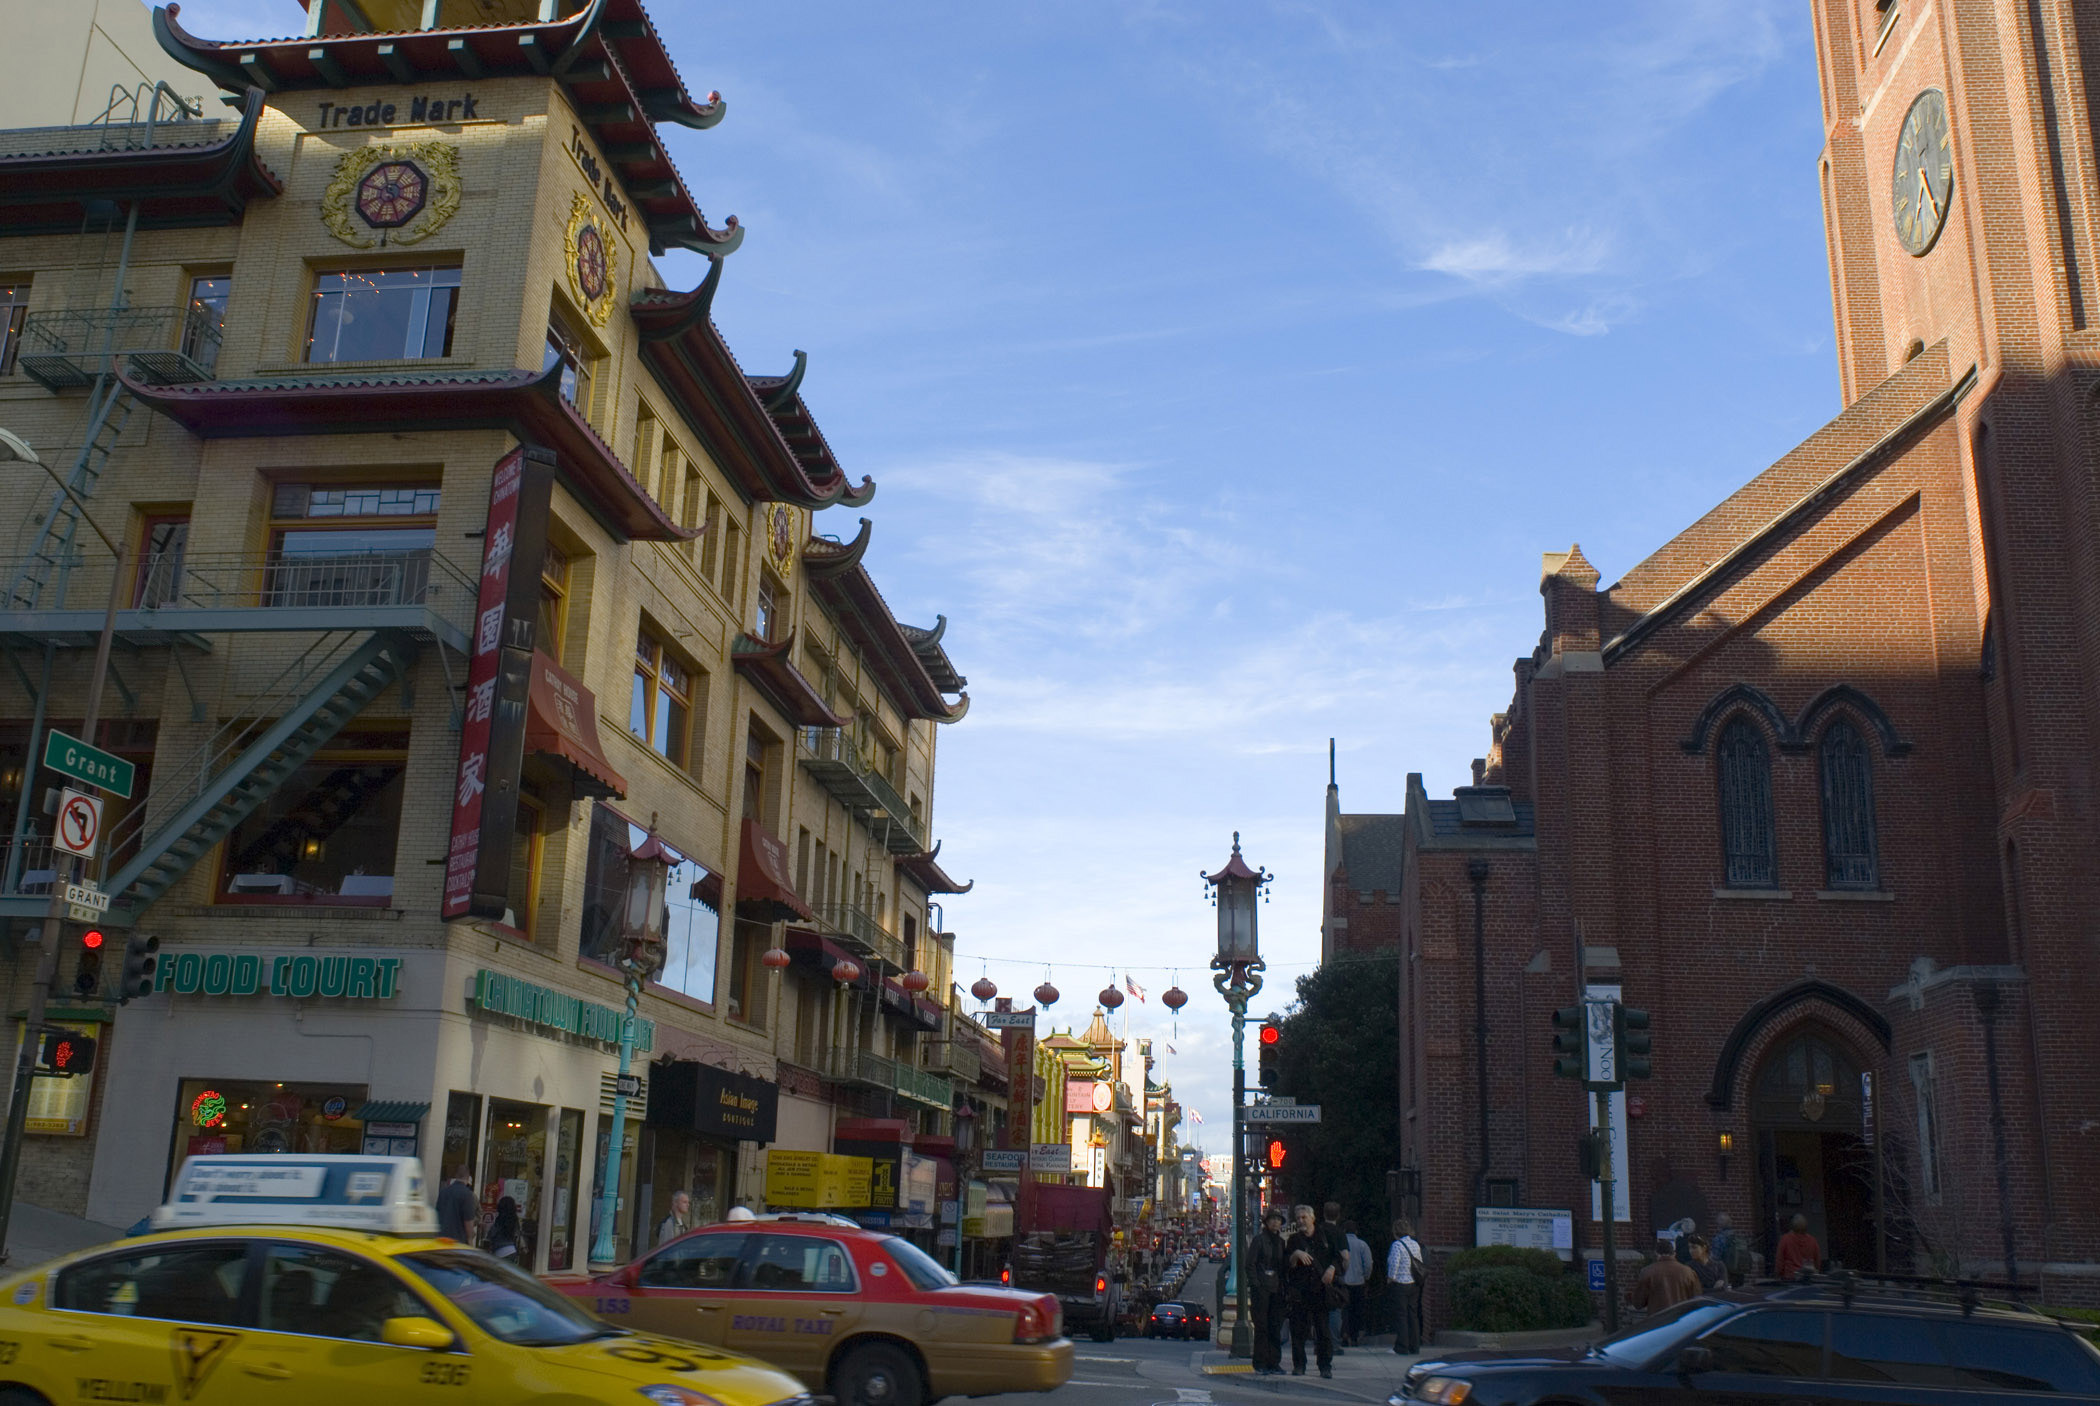 View of a busy street in China Town, San Francisco with traffic, pedestrians, stores and Asian style architecture